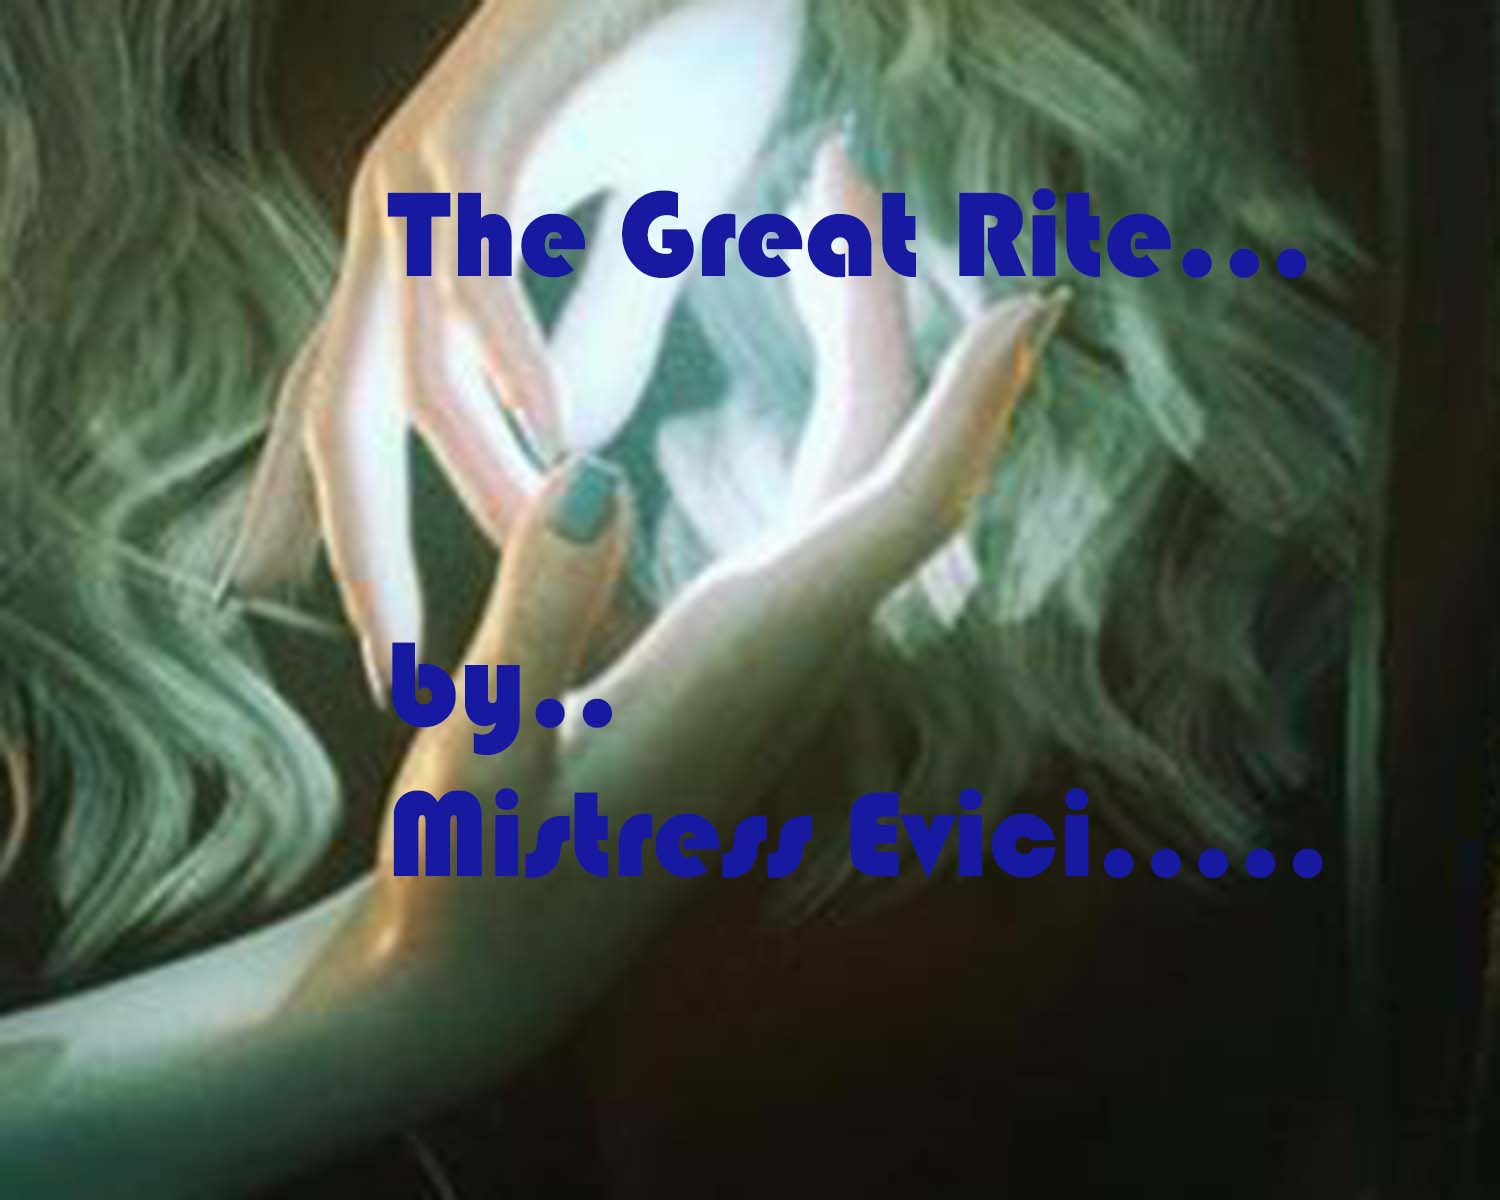 The Great Rite